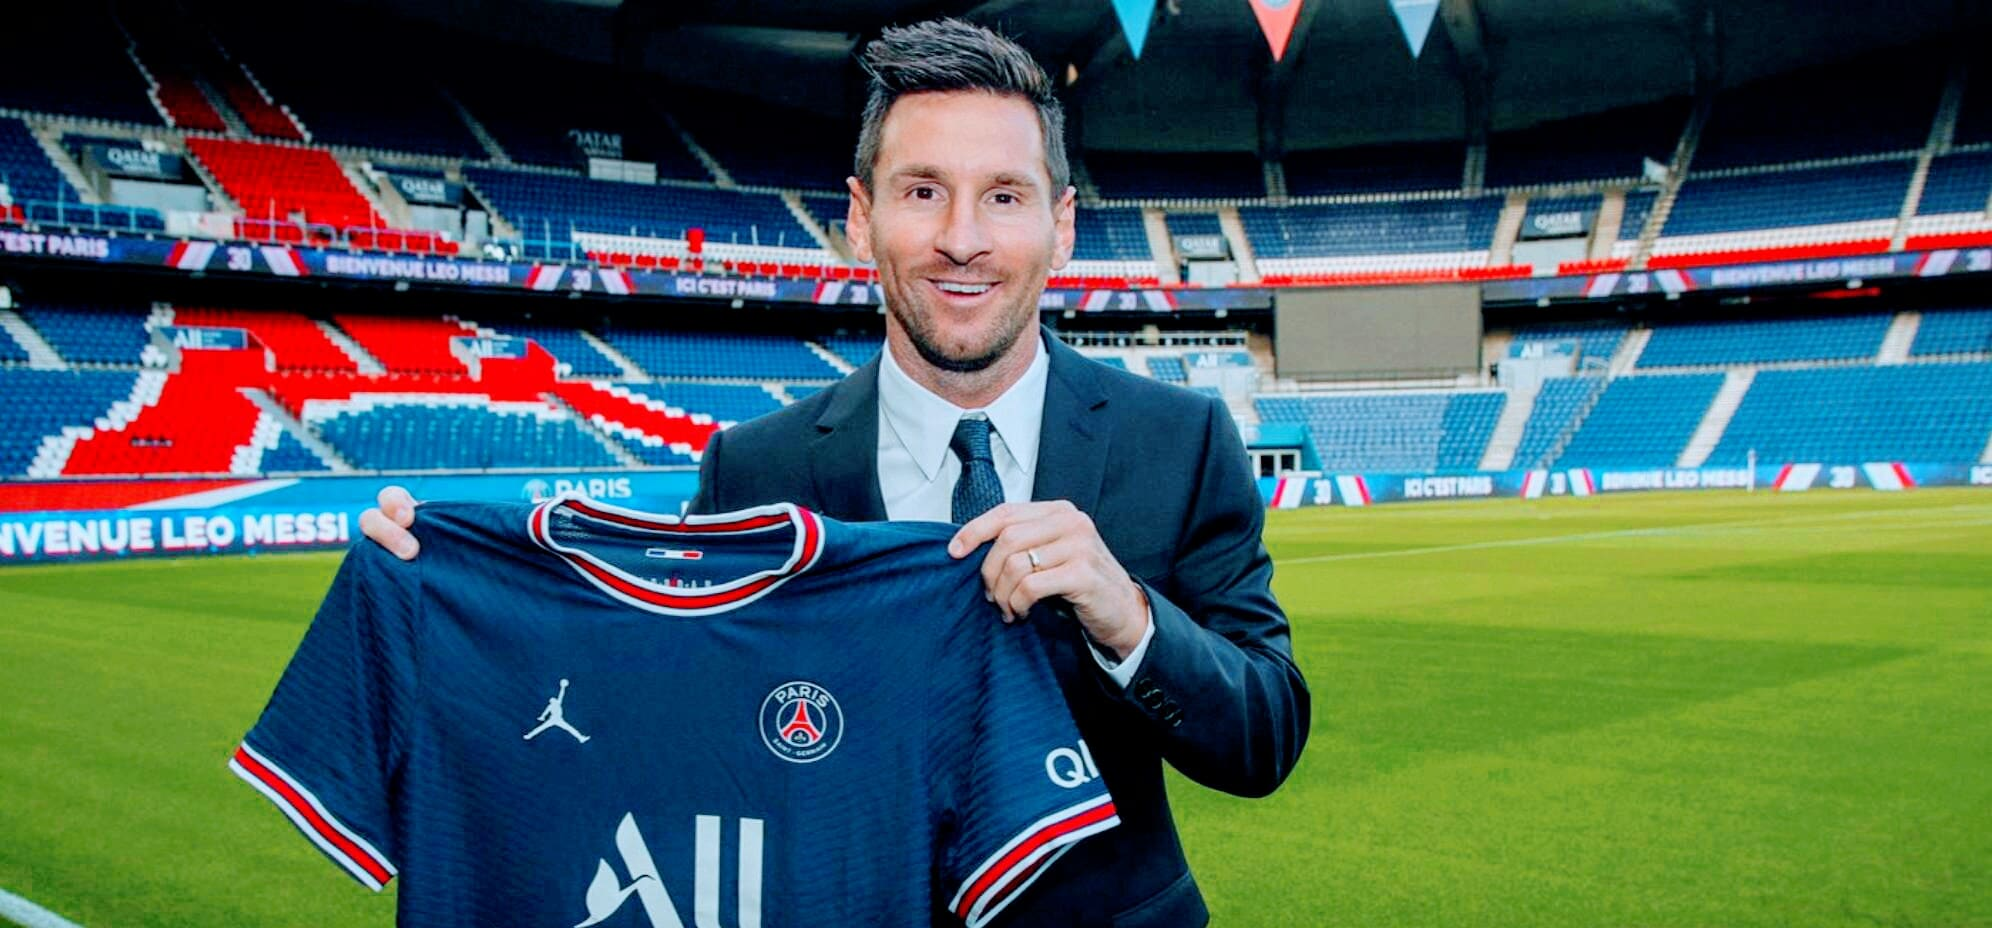 Messi: PSG Best Place For Me To Win Champions League Again